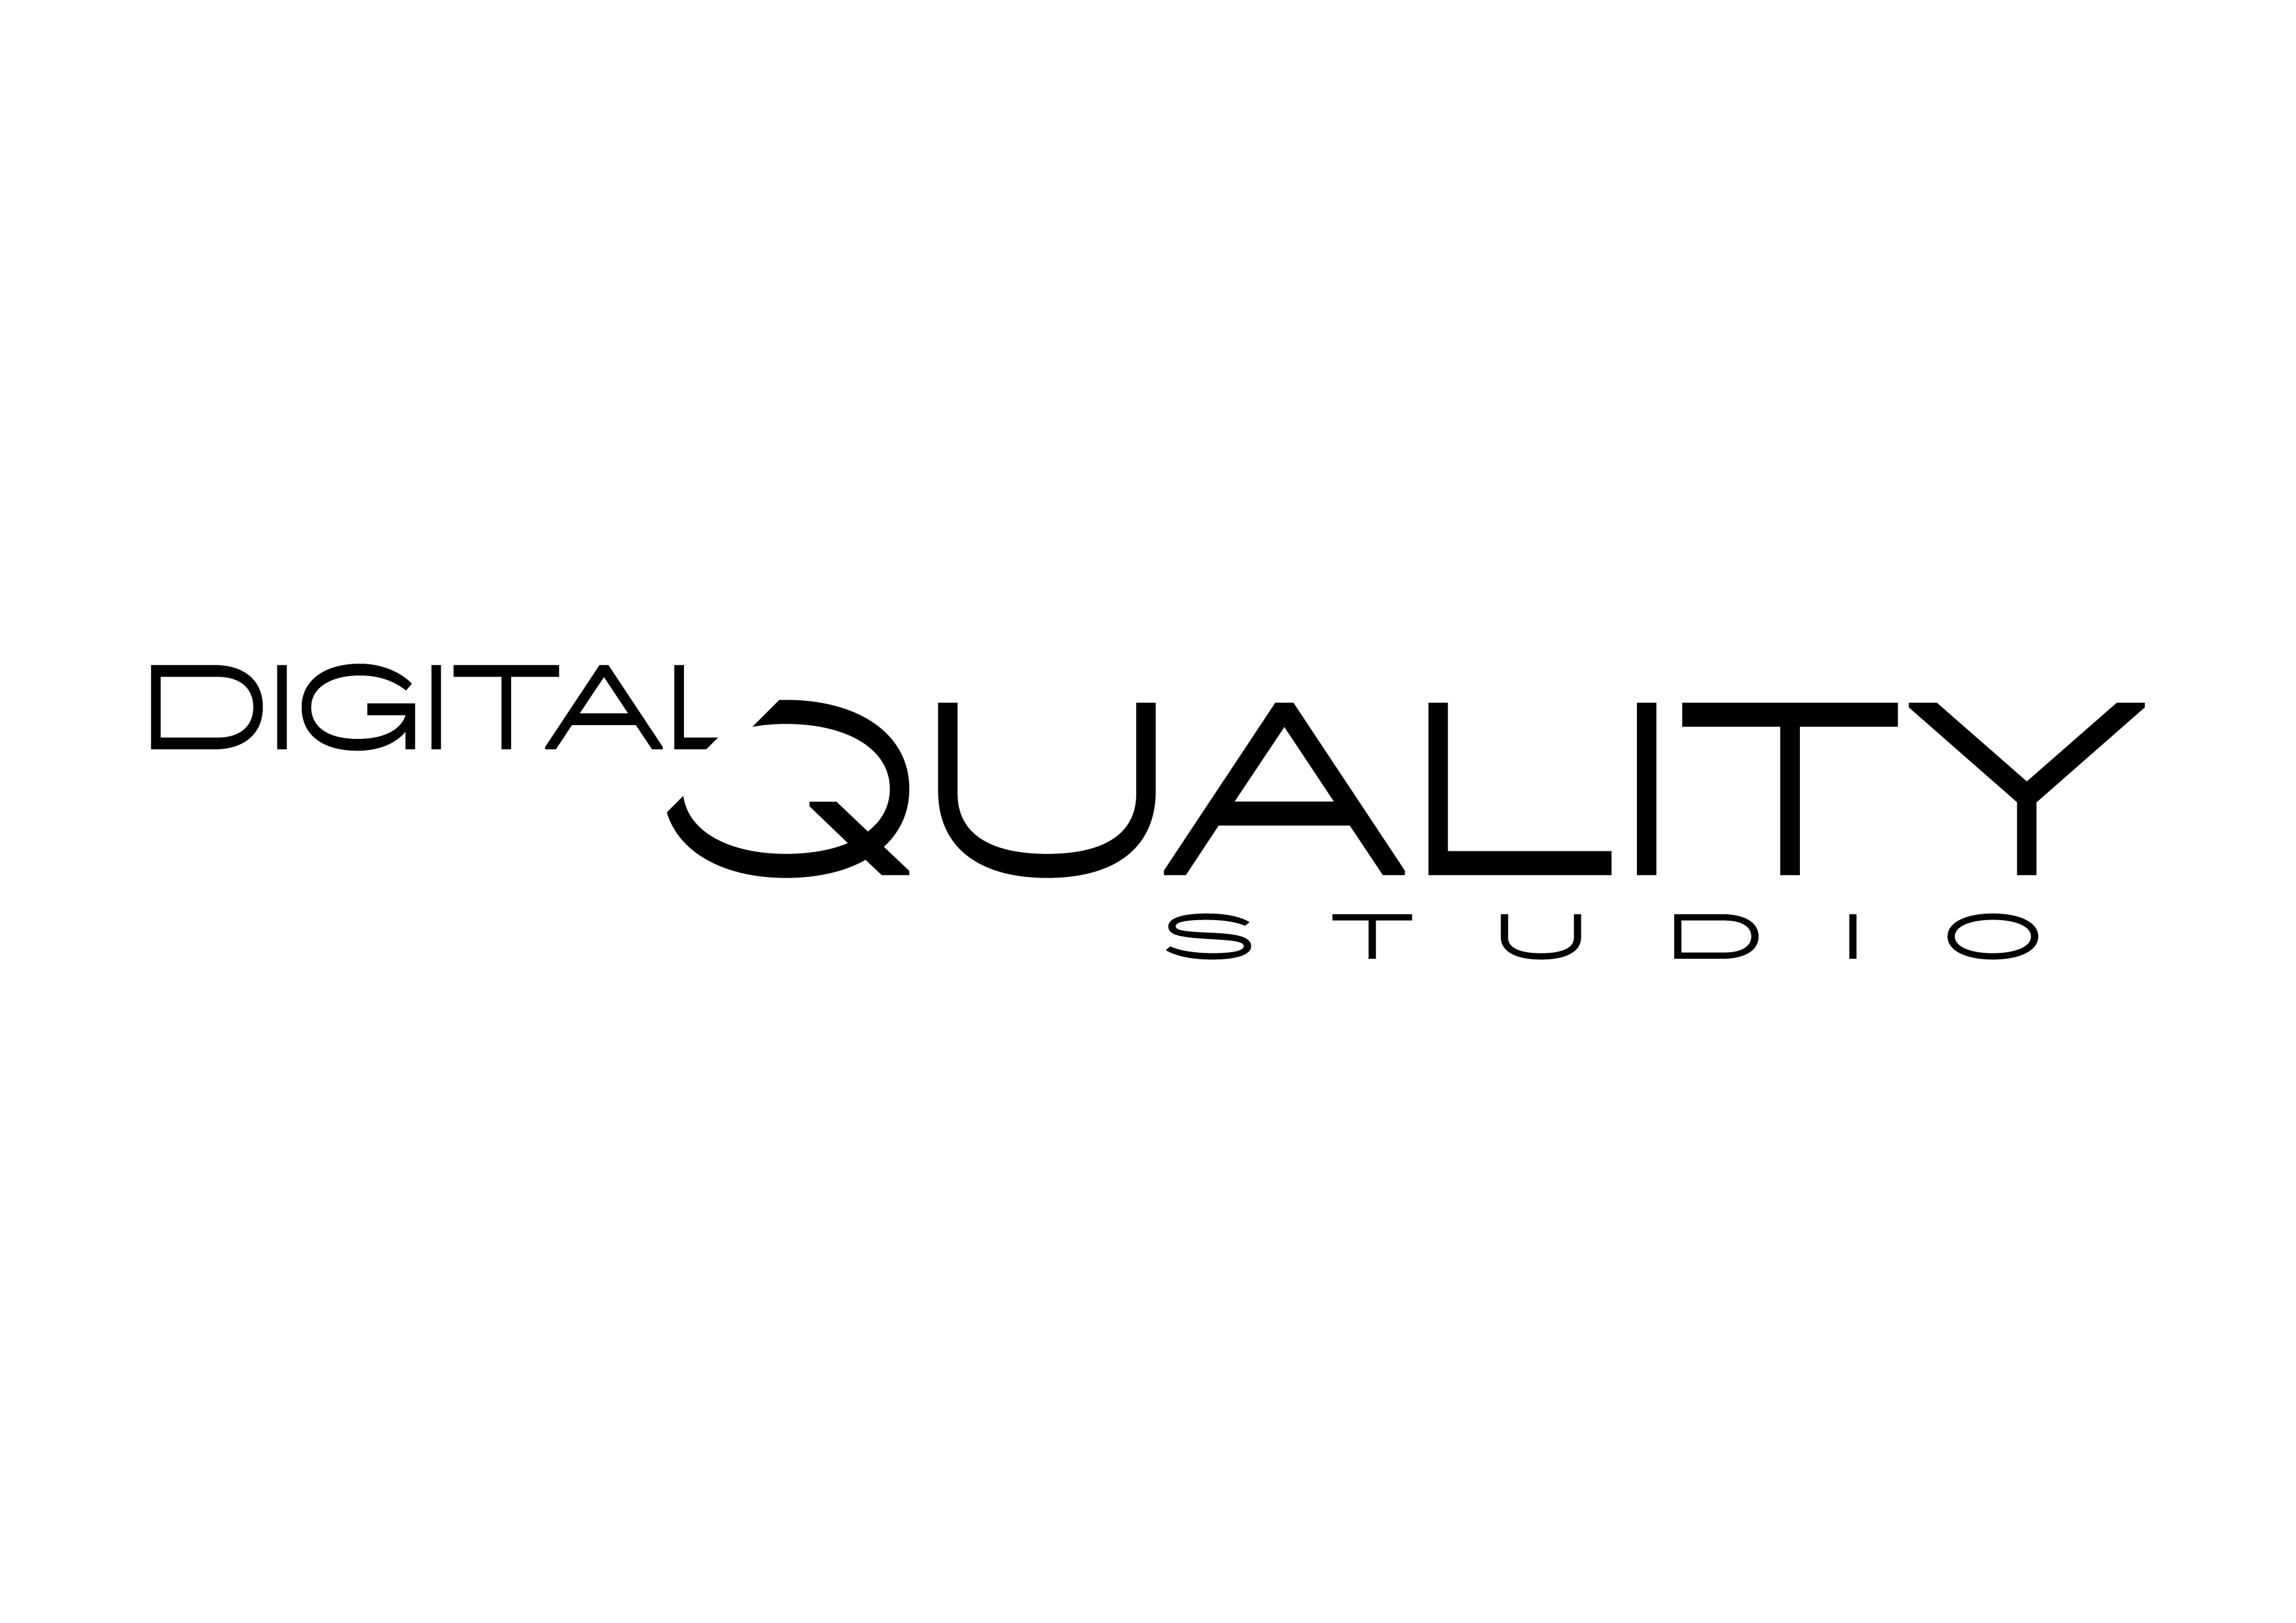 Digital Quality Studio